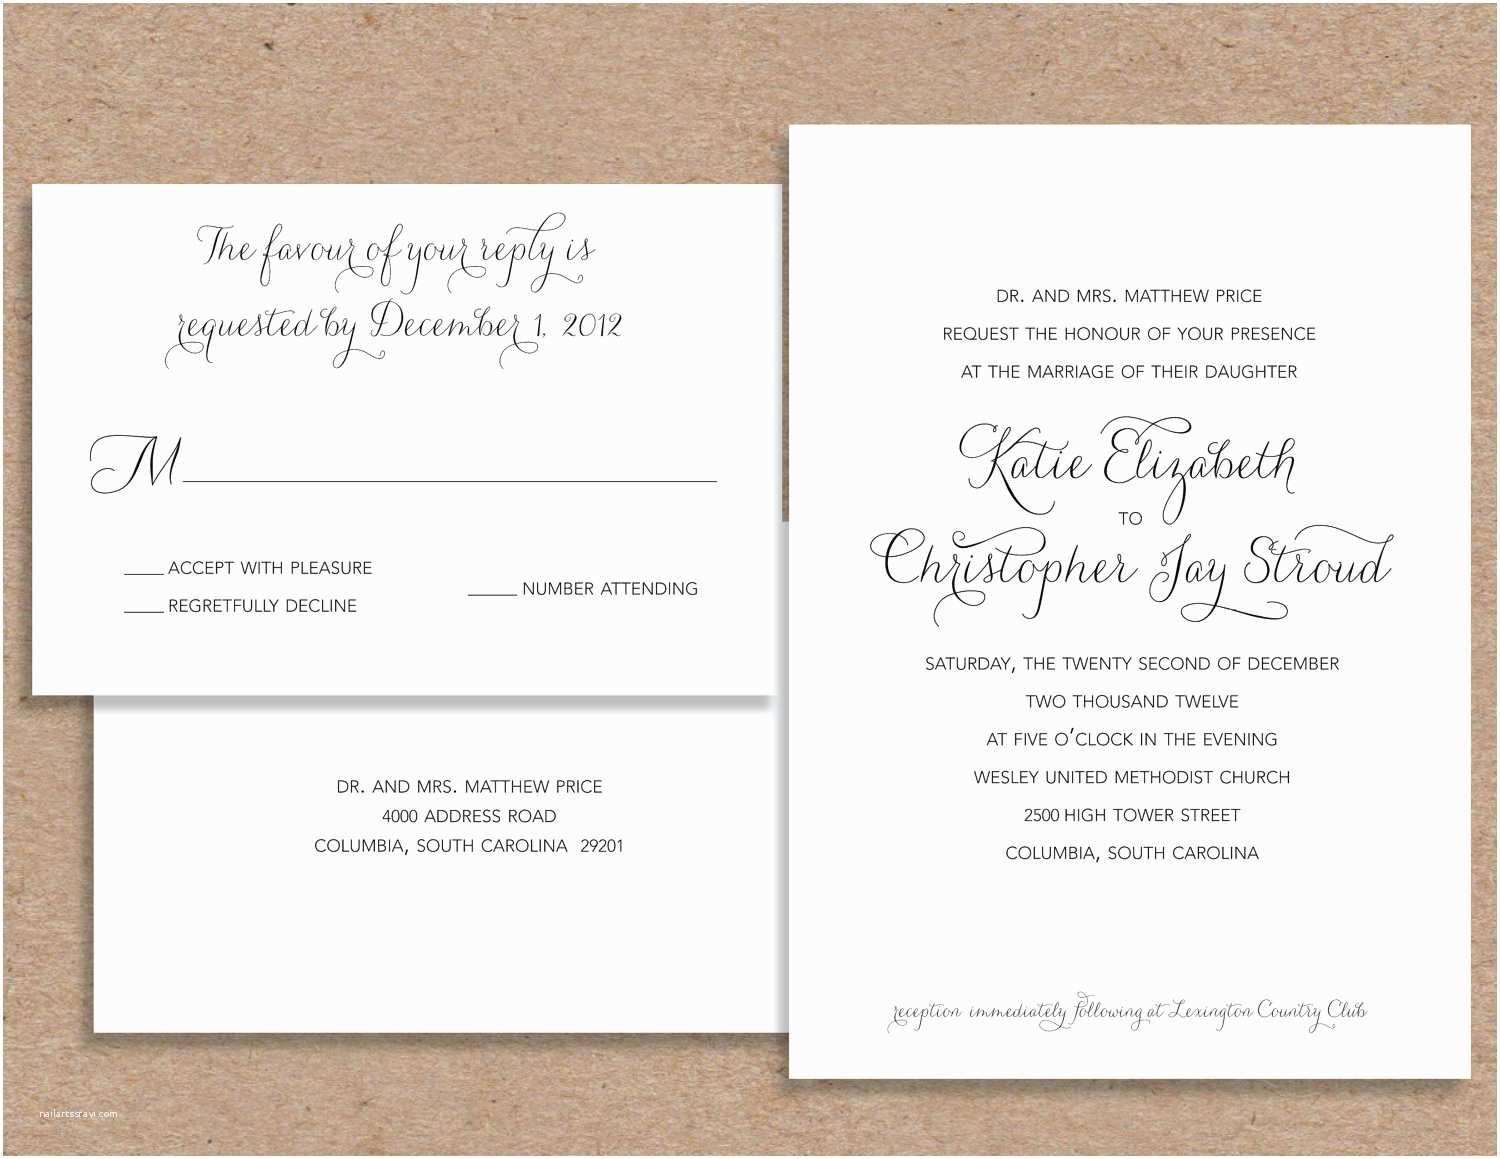 Wedding Invitation Sayings formal Wedding Invitation Wording